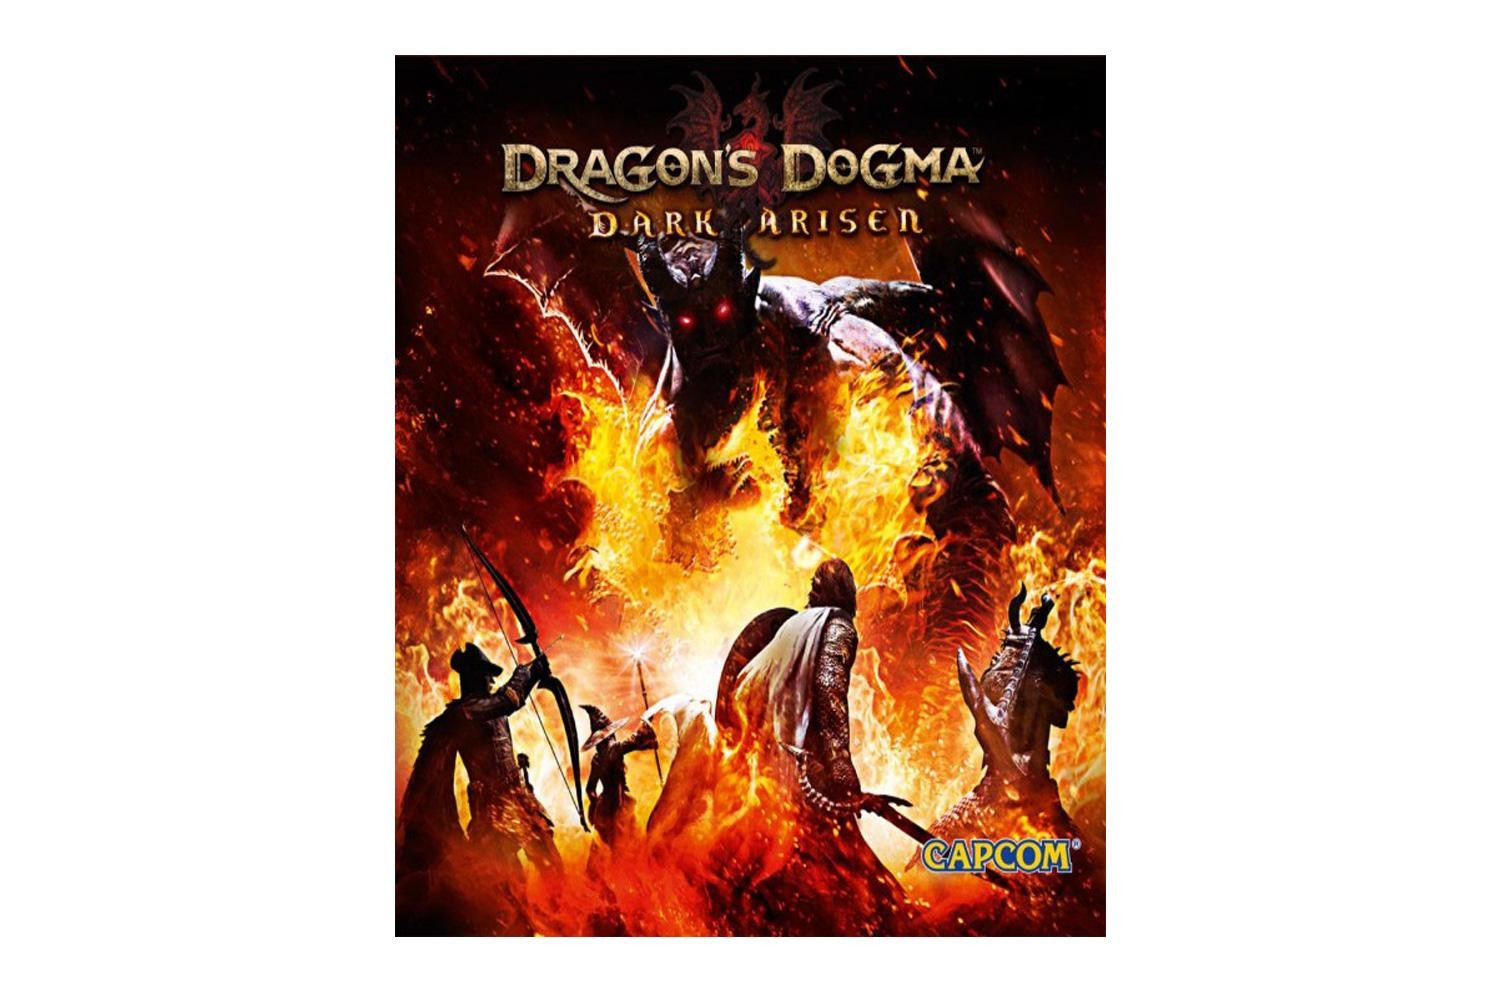 Dragon's-Dogma-Dark-Arisen-cover-art